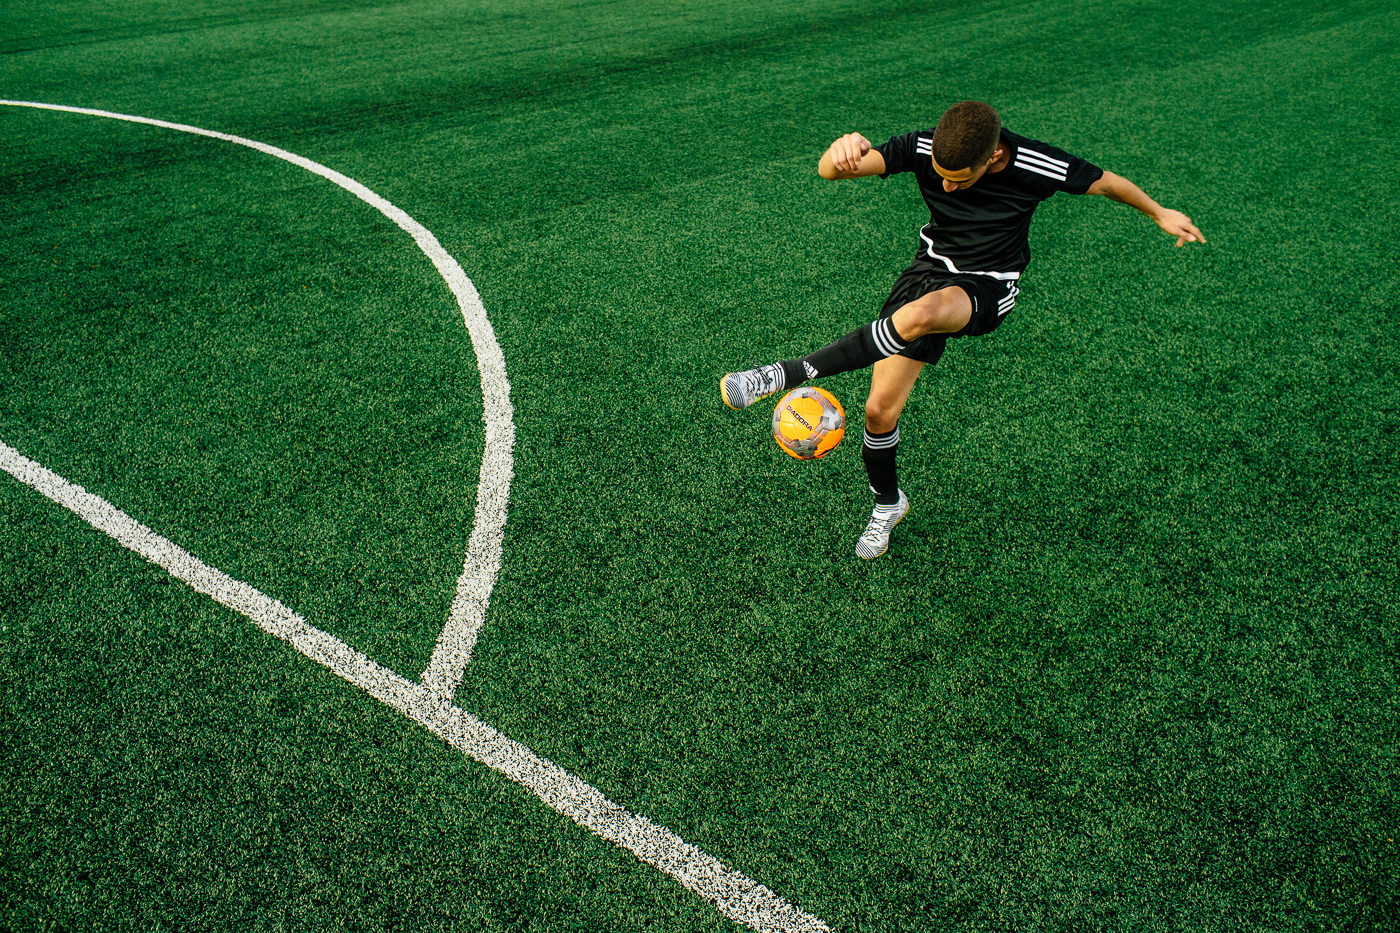 photo commerciale campagne soccer sports experts terrain de football